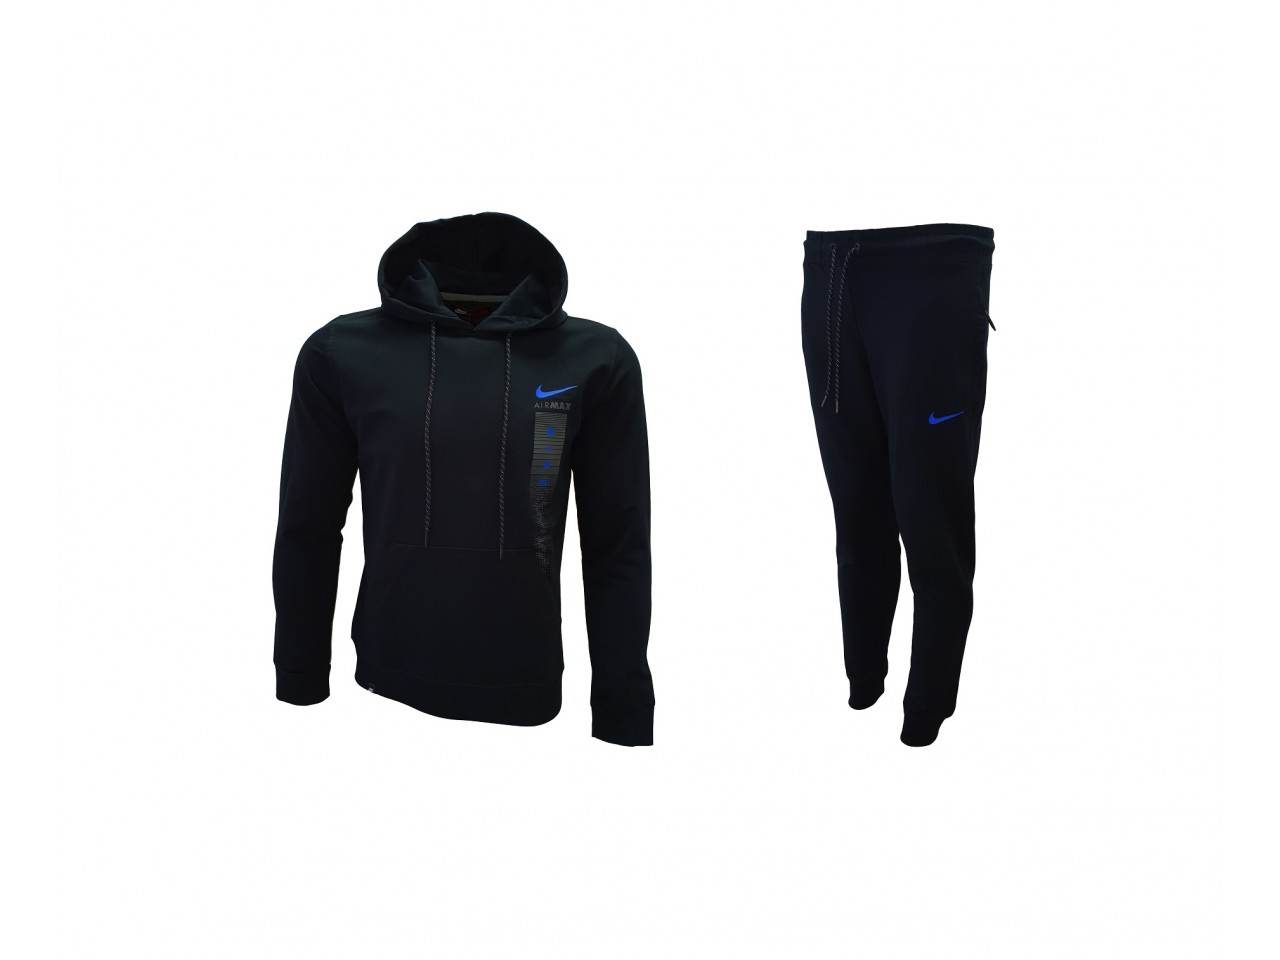 Nike AIRMAX Sweatshirt + Pants Dark Blue